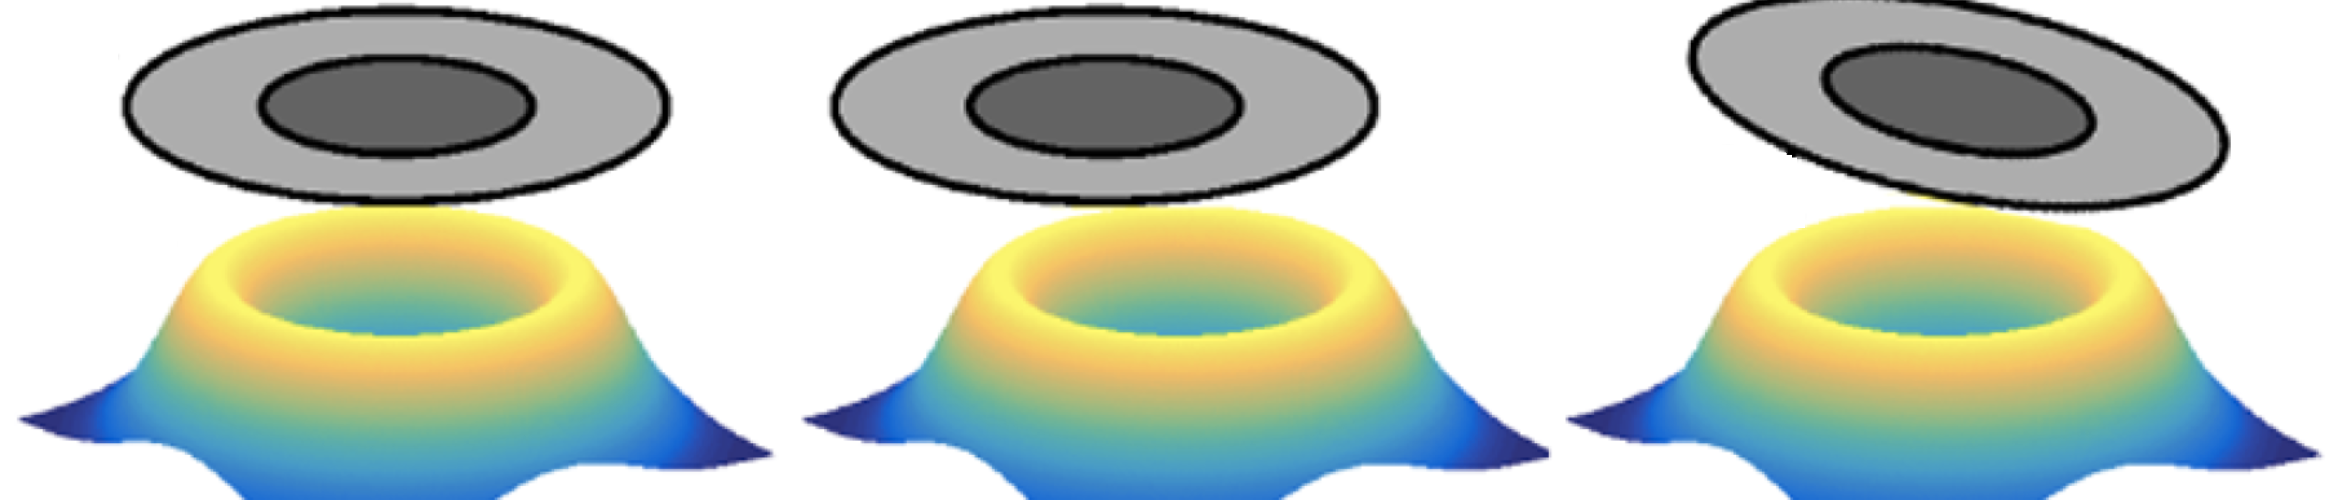 a cartoon of the 3D donut laser, looking a bit like a volcano, is shown pointed toward the disc-like laser sail. In three panels, the sail is shown moving outside the exact center of the beam, or tilting so as to not be perfectly perpendicular to the beam.